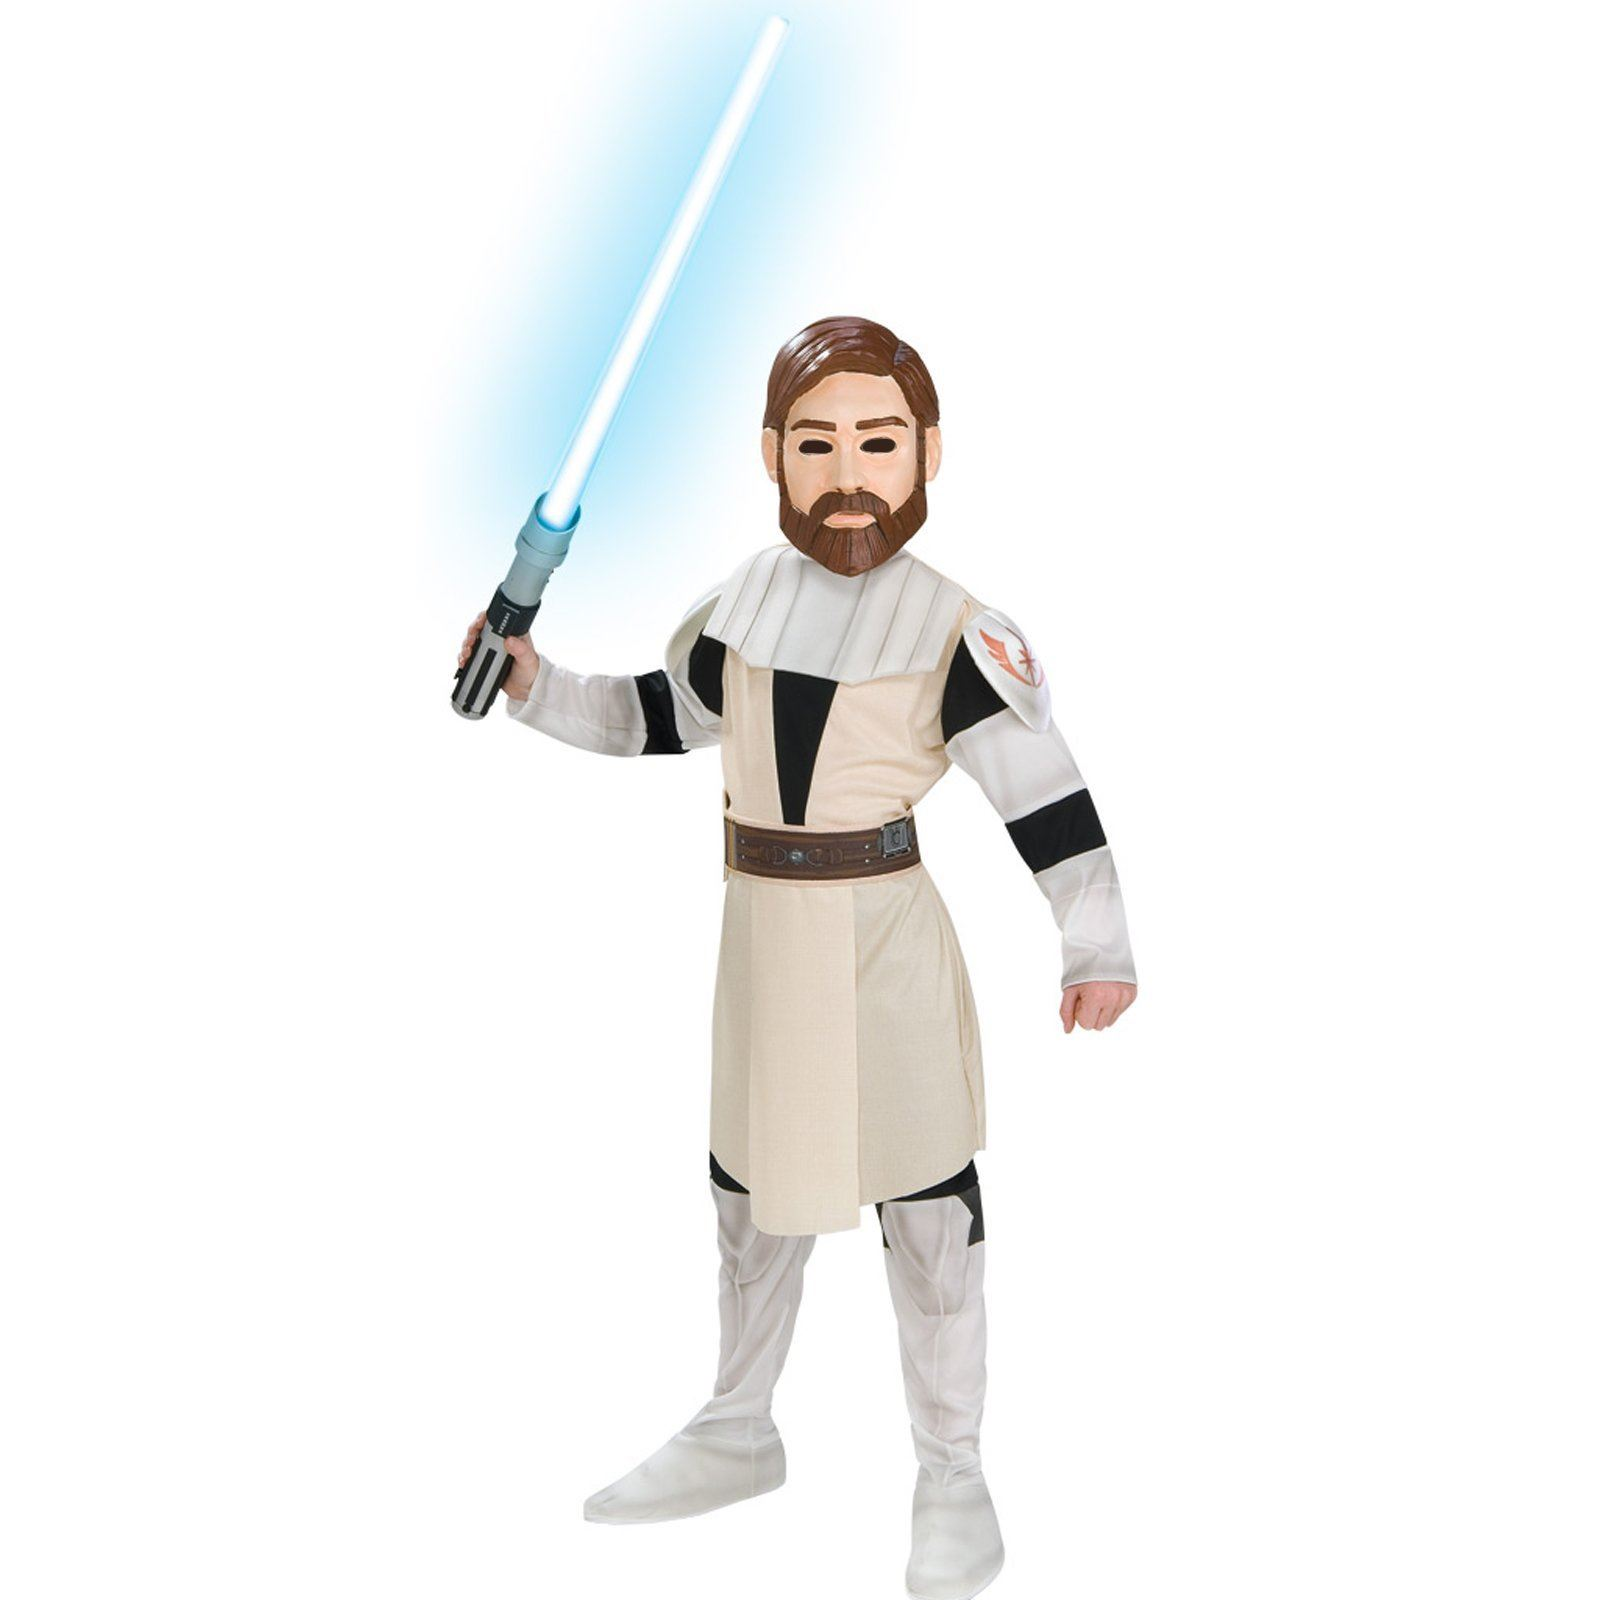 Star Wars Halloween Costumes.Kids Obi Wan Kenobi Boys Star Wars Costume